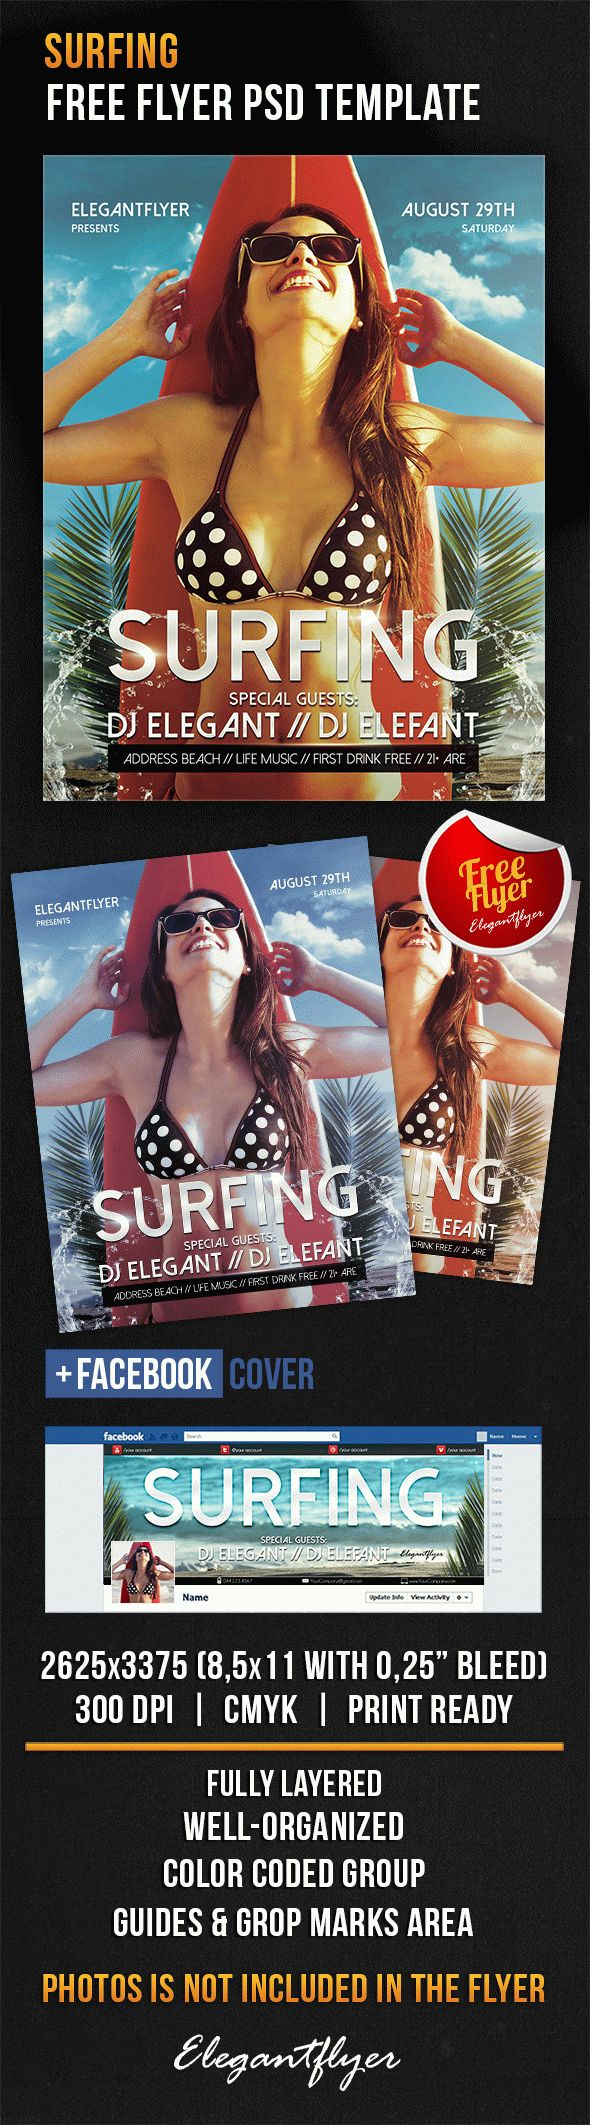 Surfing – Free Flyer PSD Template + Facebook Cover